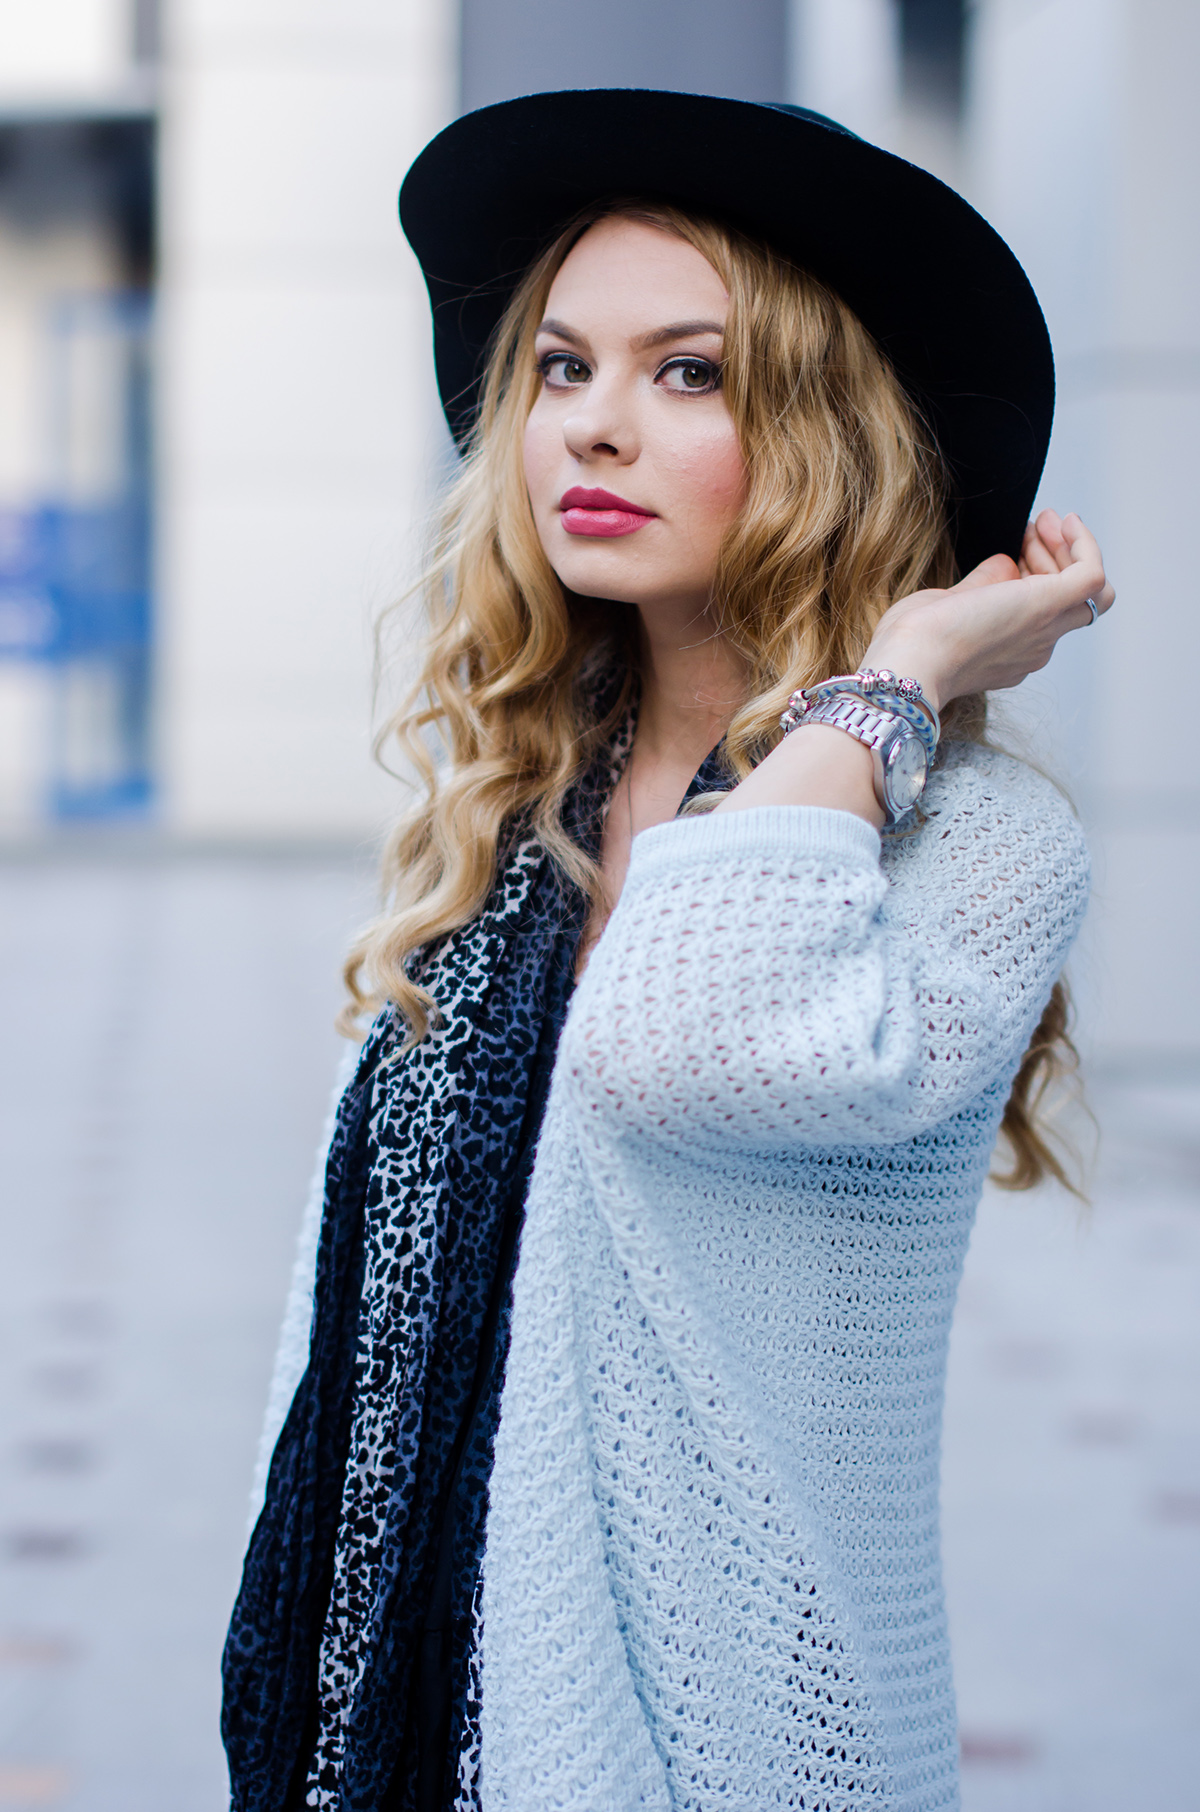 vero-moda-blue-fluffy-cardigan-black-outfit-hat-curls (8)